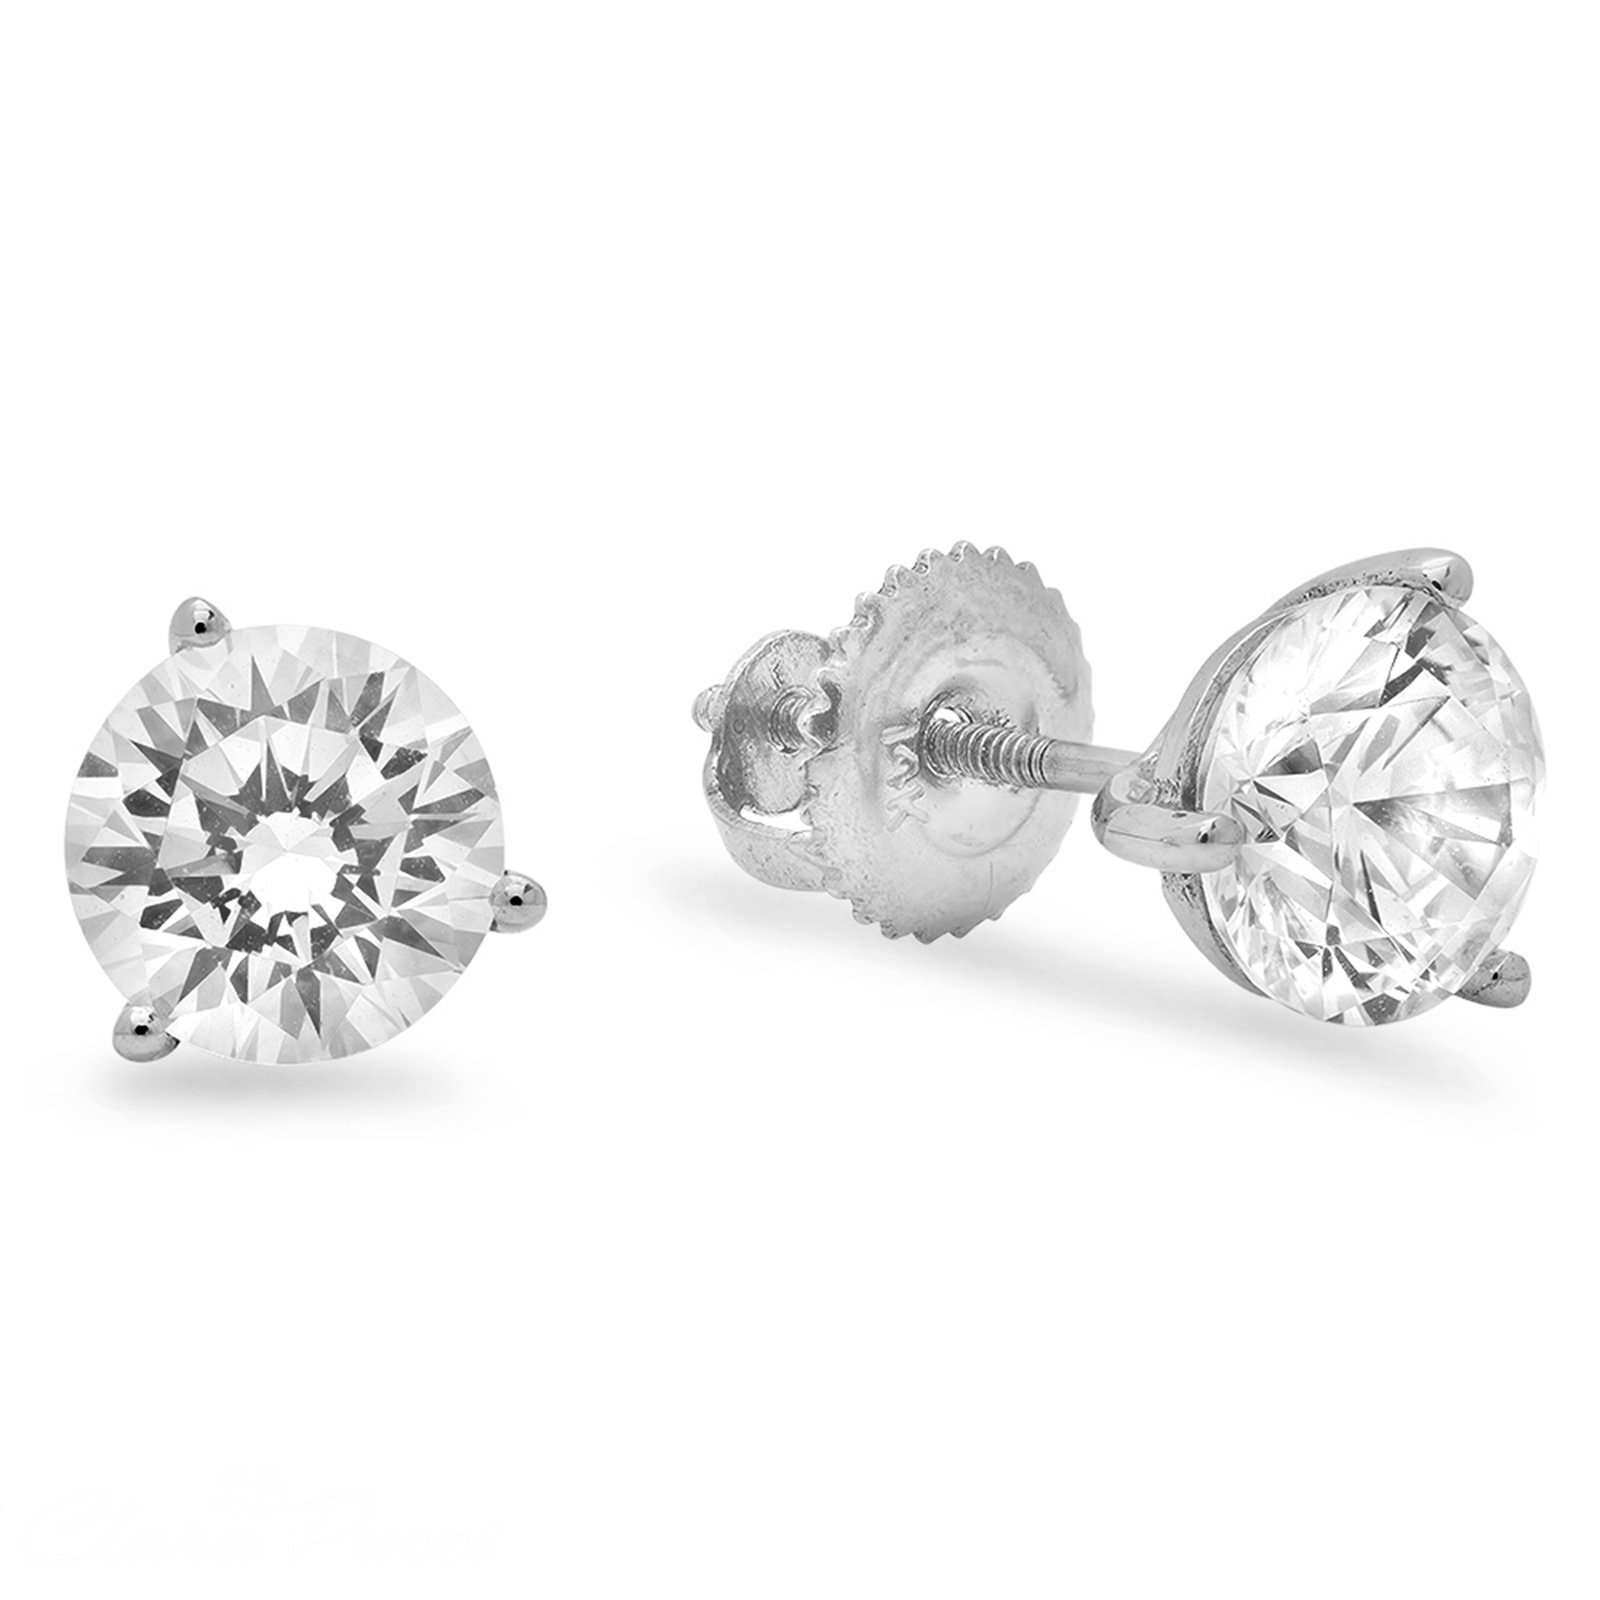 4.0 ct Round Cut Simulated Diamond CZ Solitaire Martini Style Stud Earrings in 14k White Gold Screw Back by Clara Pucci